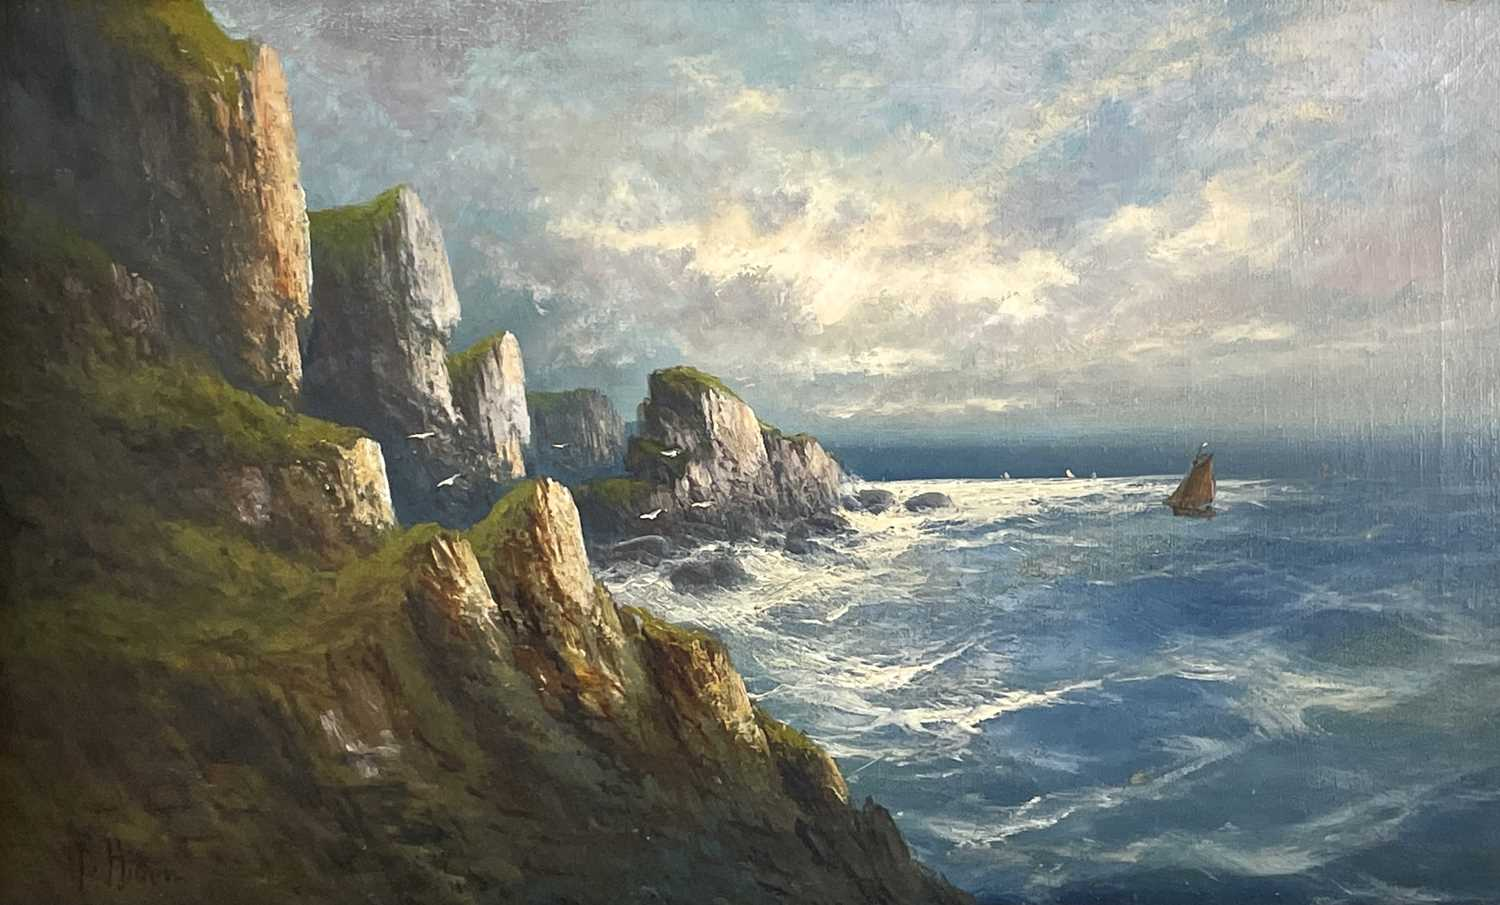 """Frank HIDER (1861-1933)Two oils on canvas """"Near Lands End"""", 30 x 50cm'The Evening Glory of the - Image 2 of 7"""